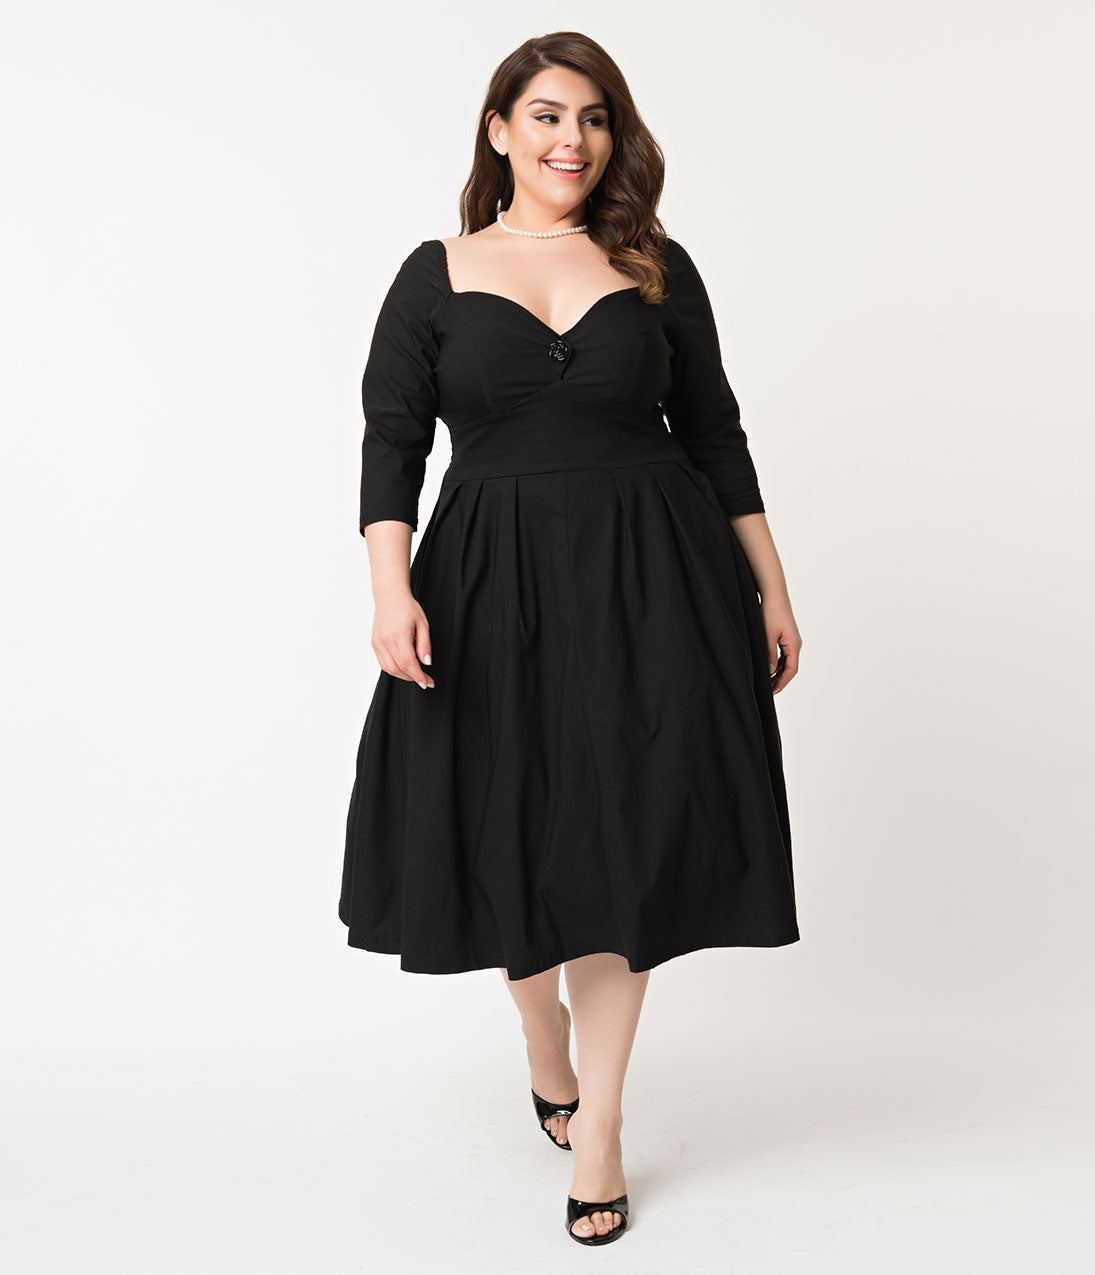 1950s Dresses, 50s Dresses | 1950s Style Dresses Unique Vintage Plus Size 1950S Style Black Bengaline Sweetheart Lamar Swing Dress $98.00 AT vintagedancer.com